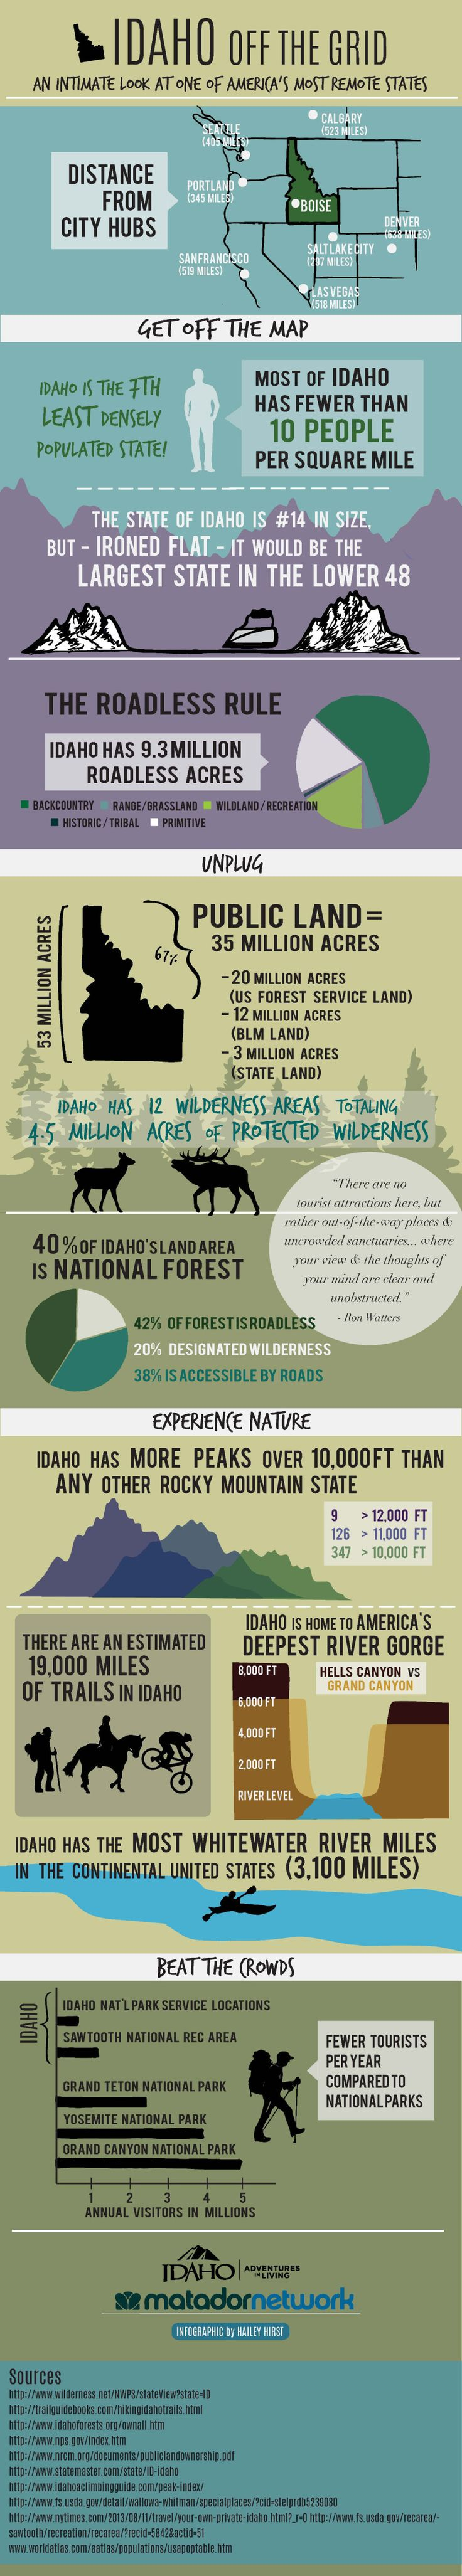 This incredible infographic shows exactly how easy it is to beat the crowds and reconnect with nature in Idaho.